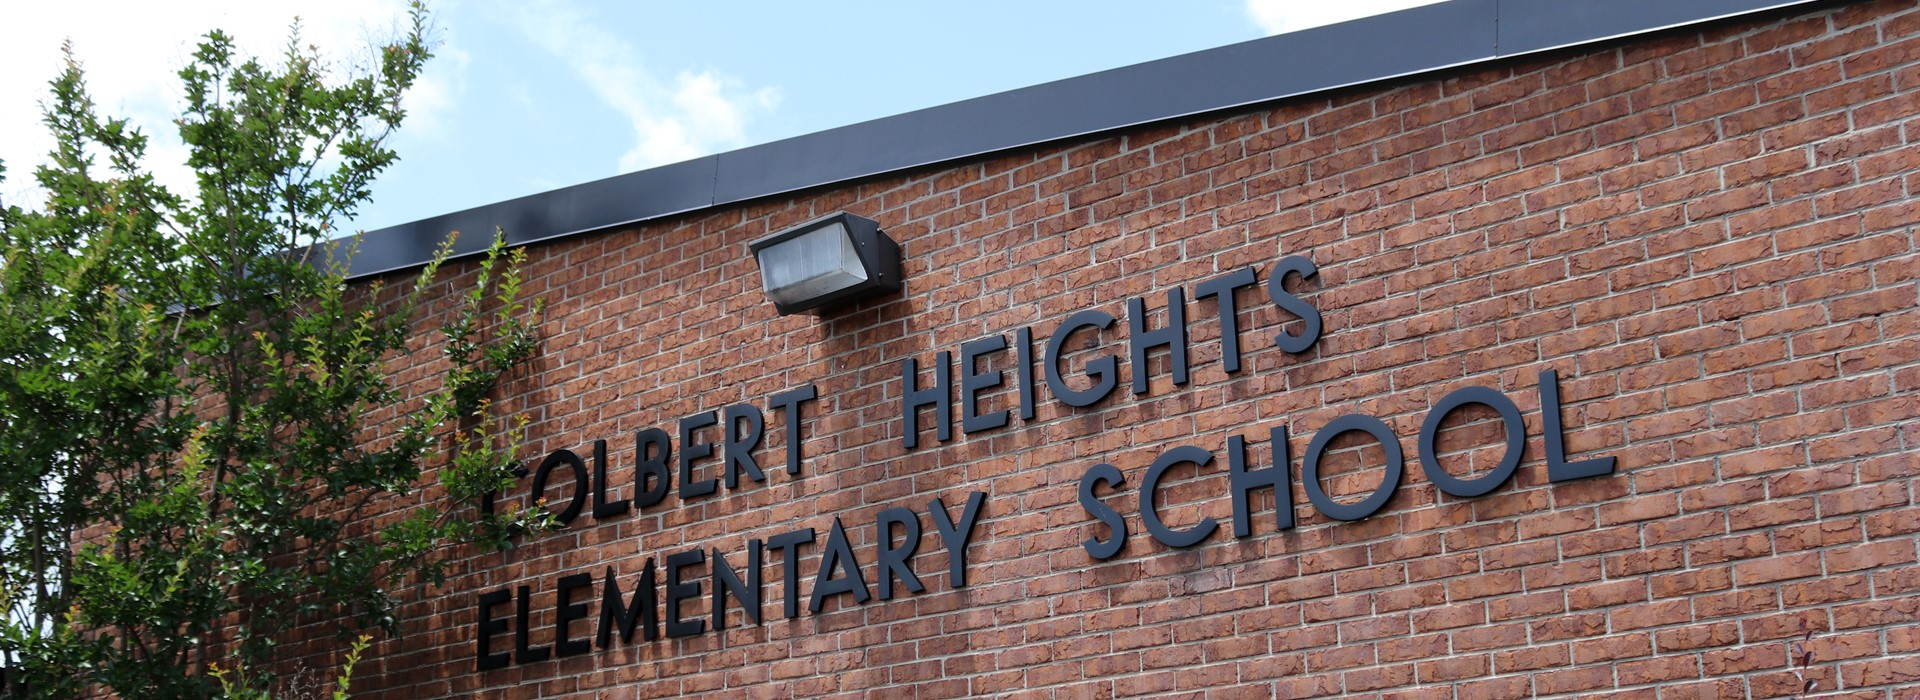 Colbert Heights Elementary School